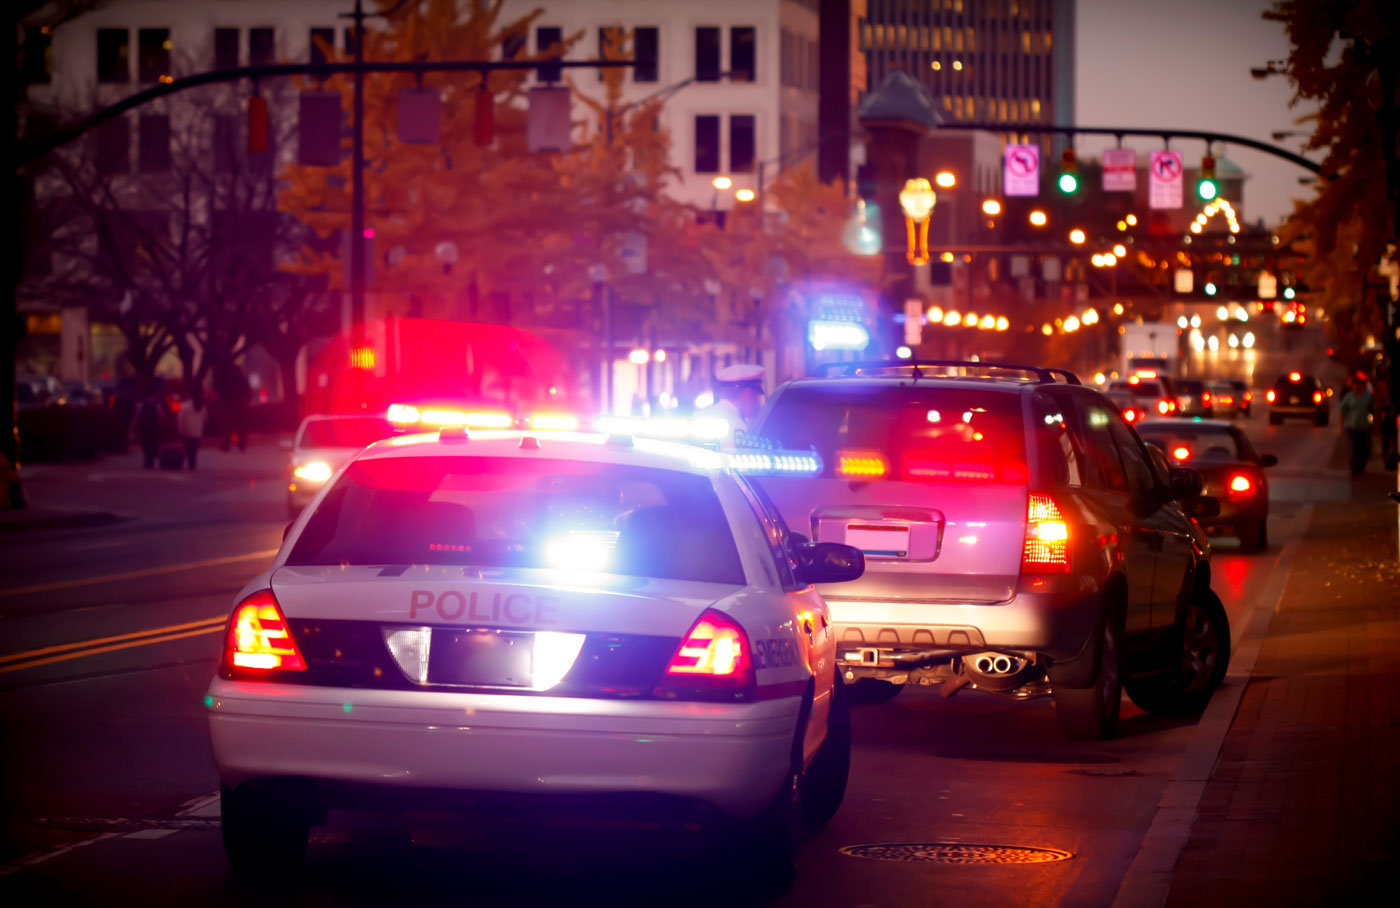 3 Things You Should Know About Police Questioning